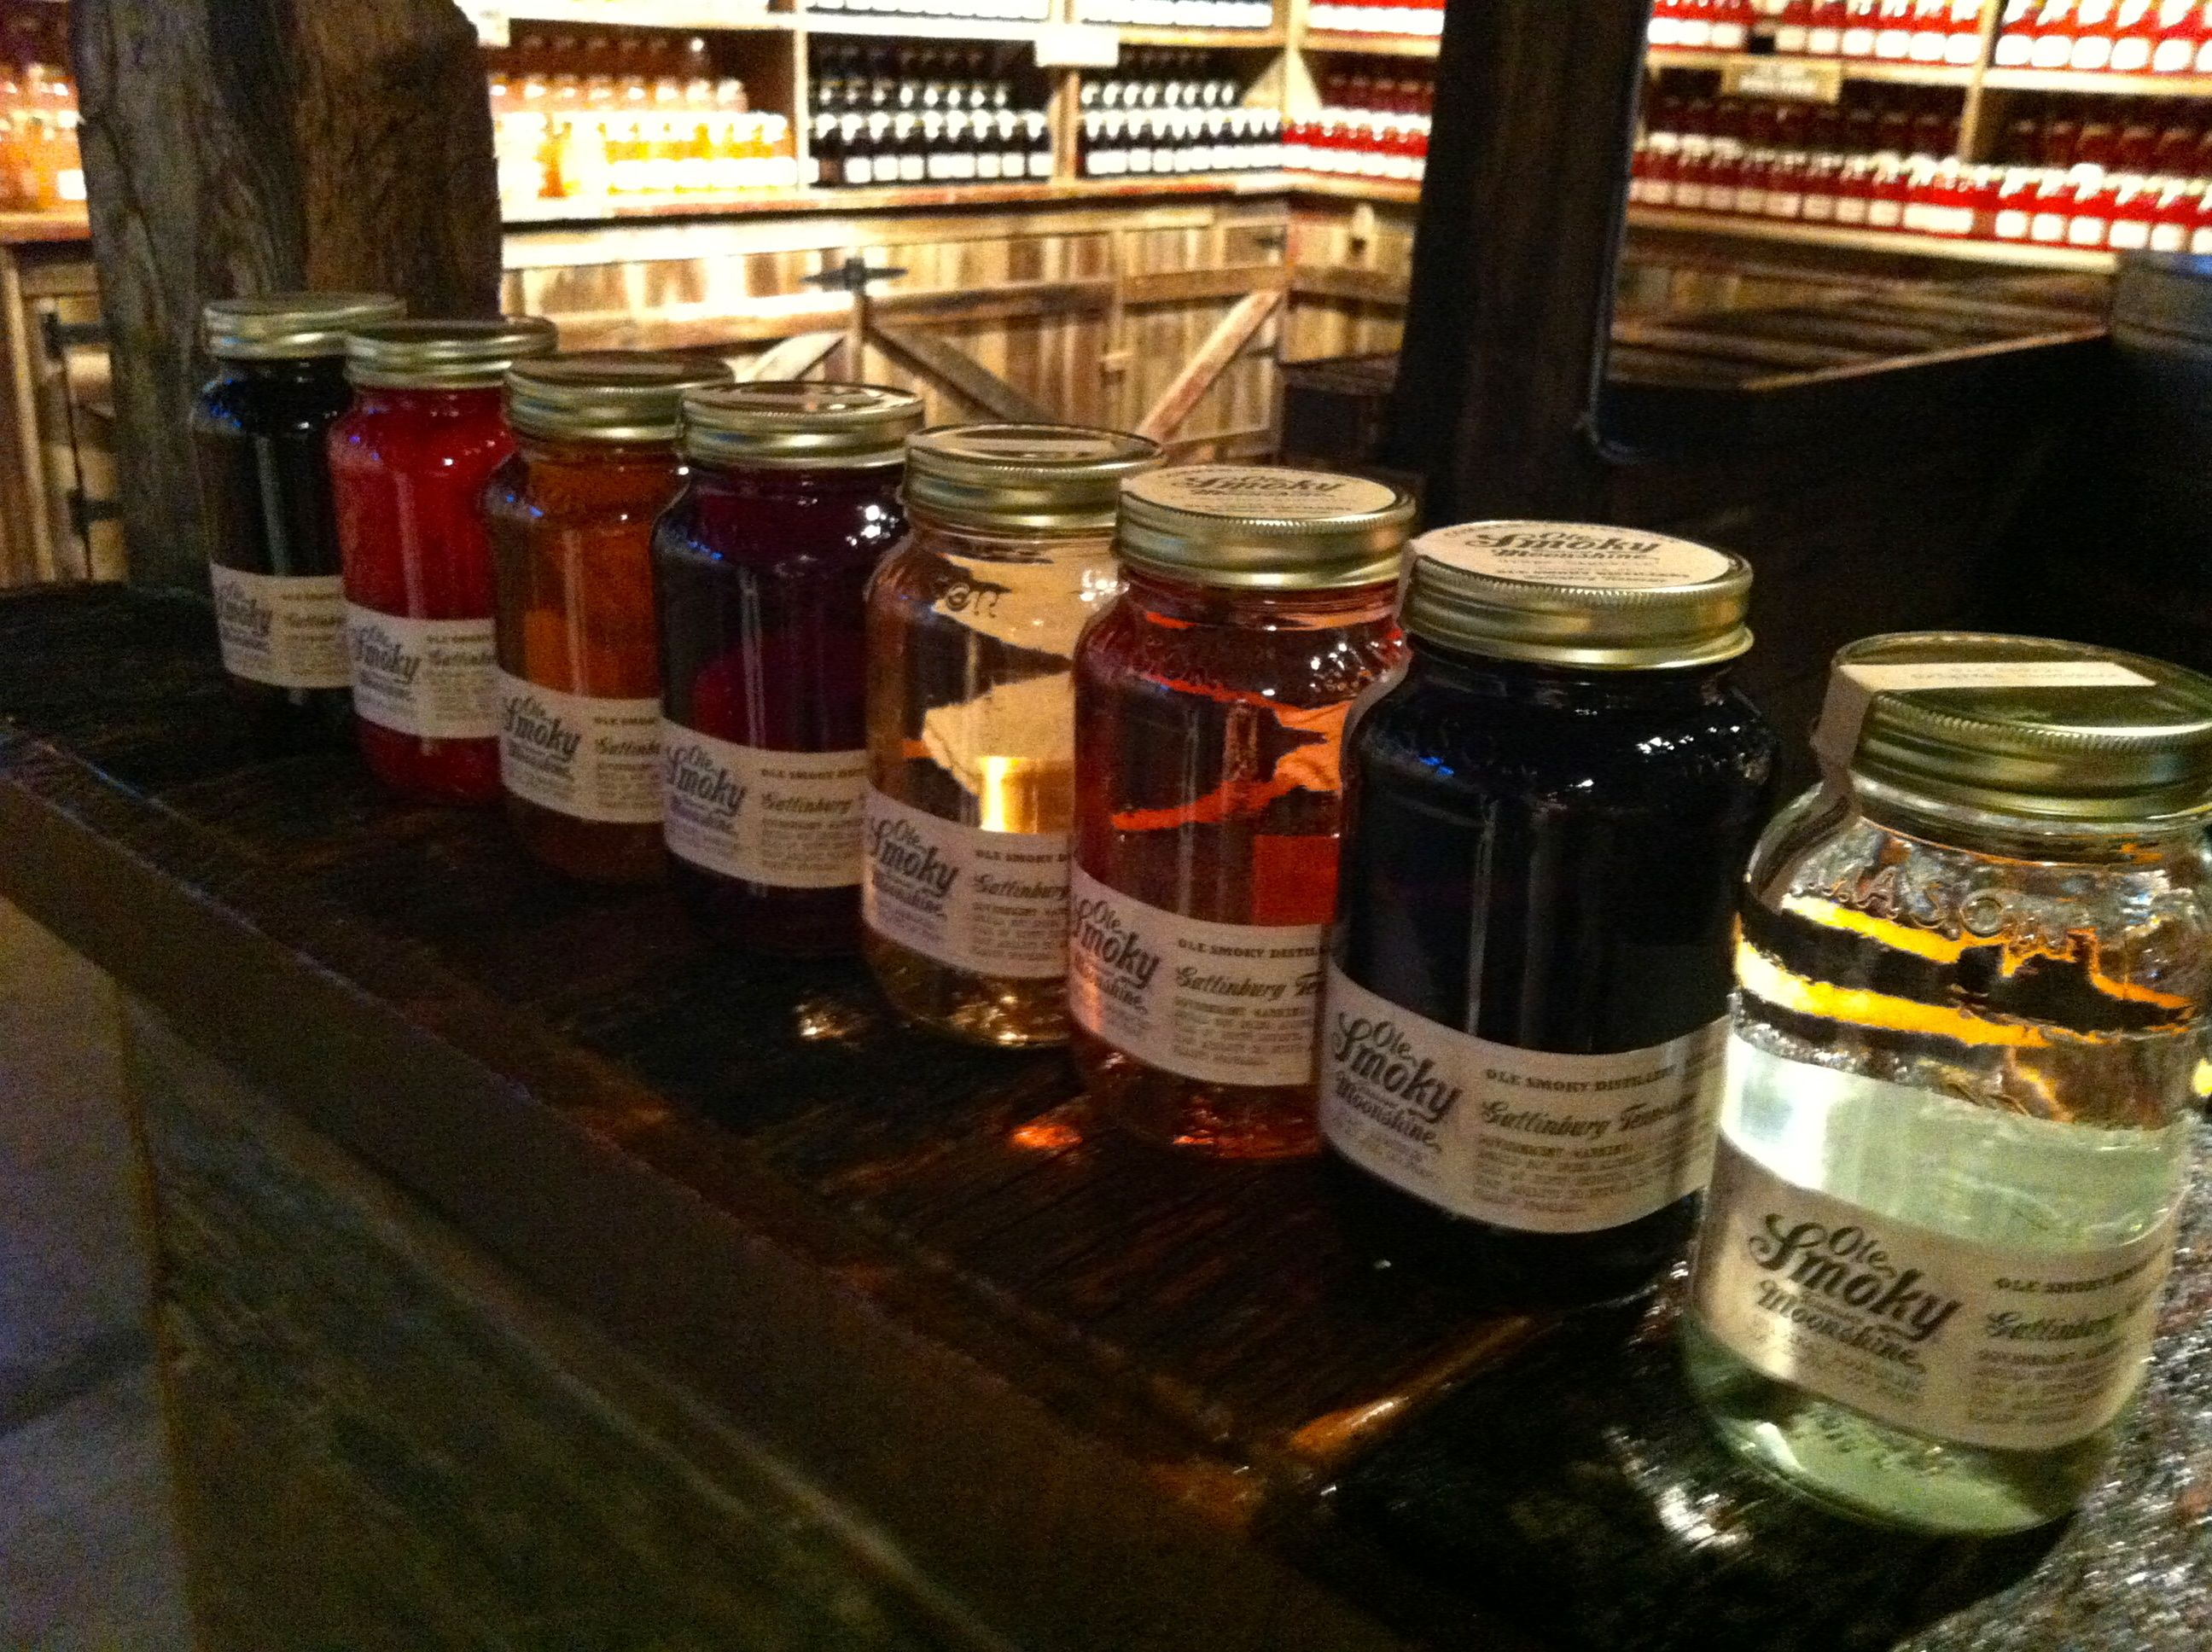 Ole Smoky Moonshine flavors include Peach, Blackberry, Apple Pie and more!